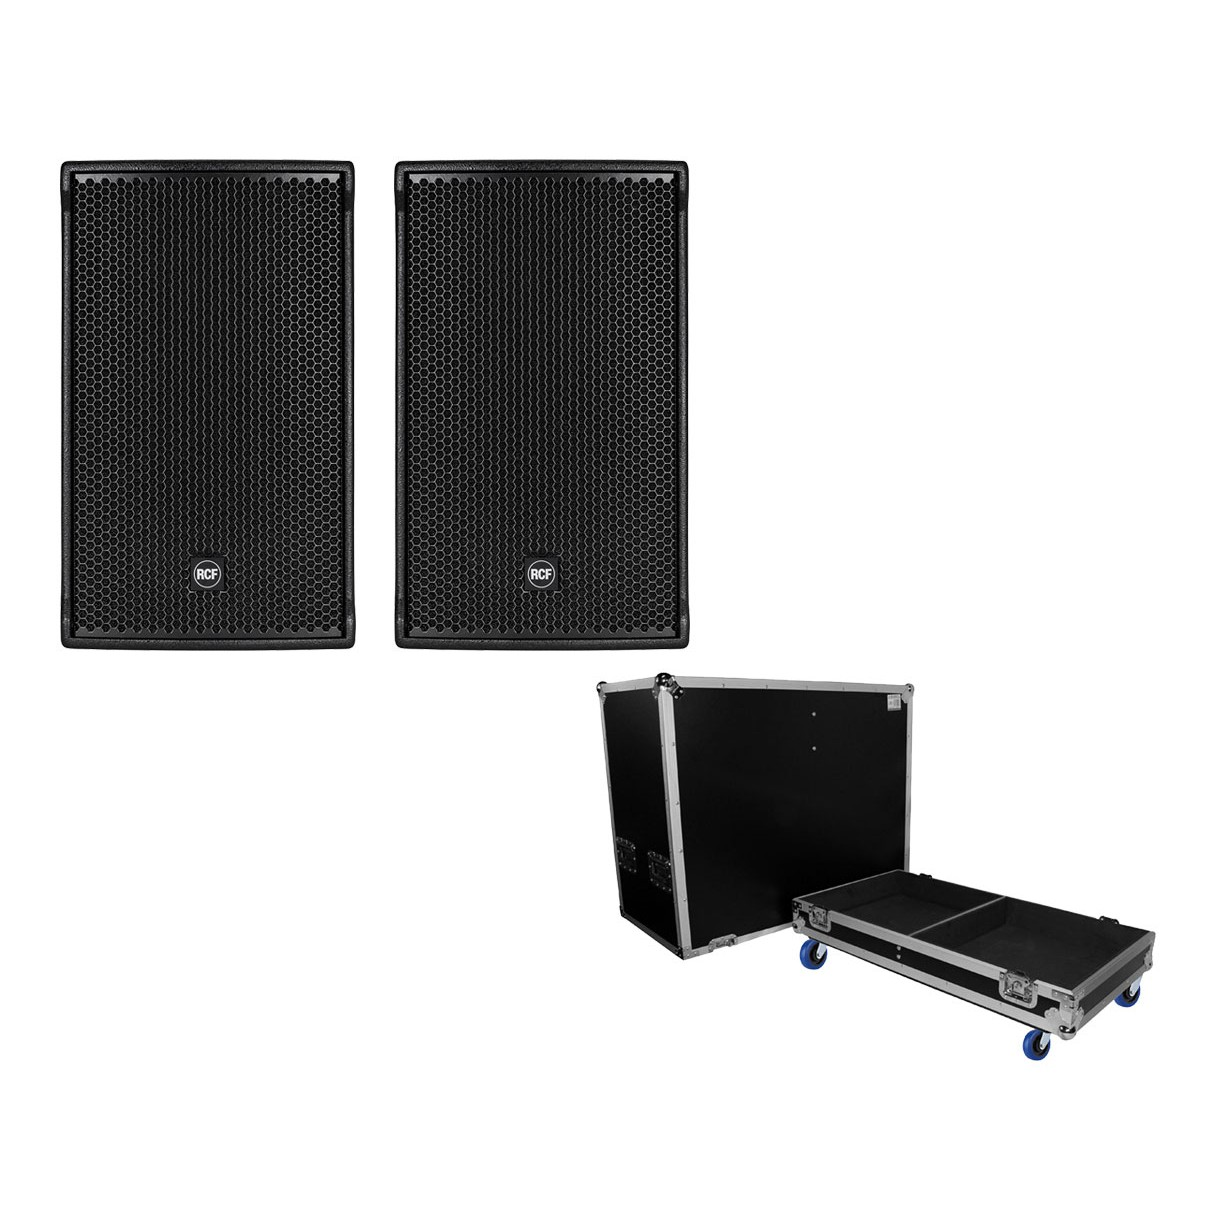 2x RCF NX 32-A + ProX Case for 2 Speakers